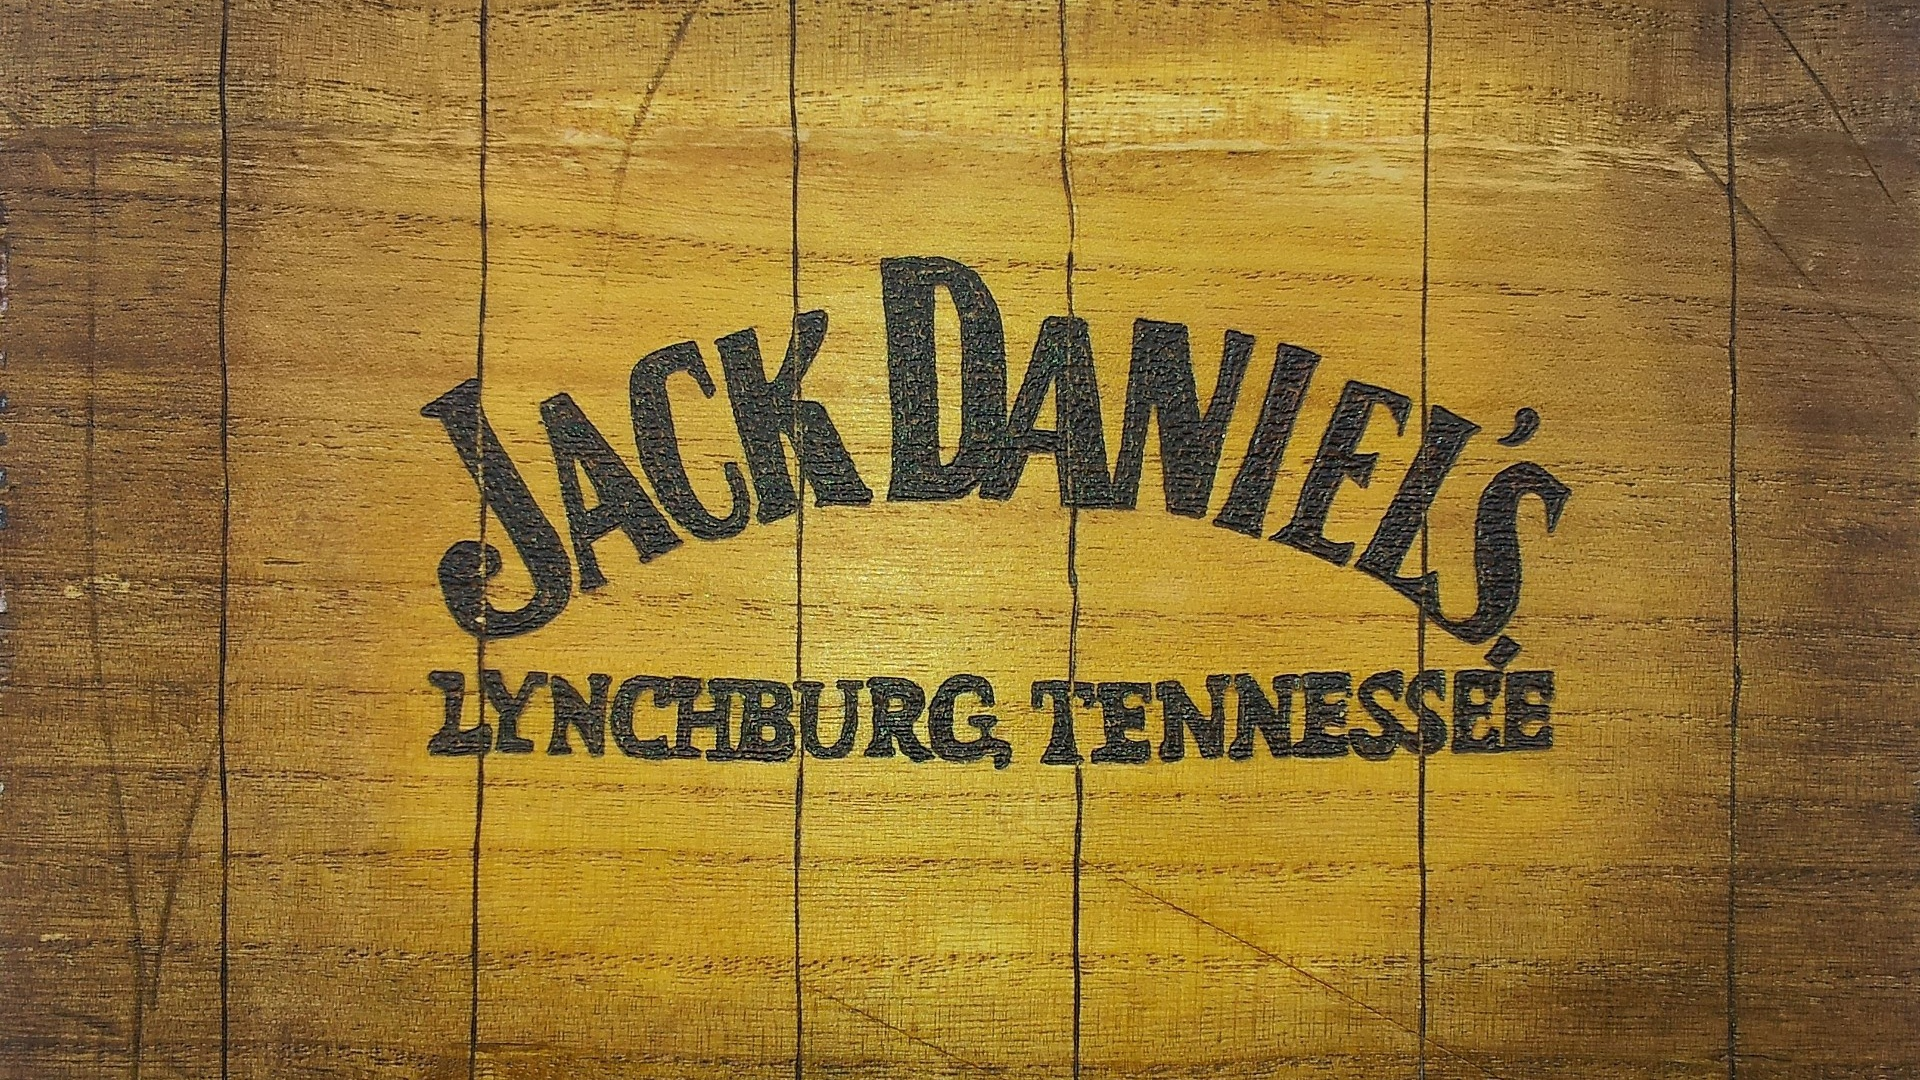 Jack daniels full hd wallpaper and background image 1920x1080 products jack daniels wallpaper voltagebd Gallery